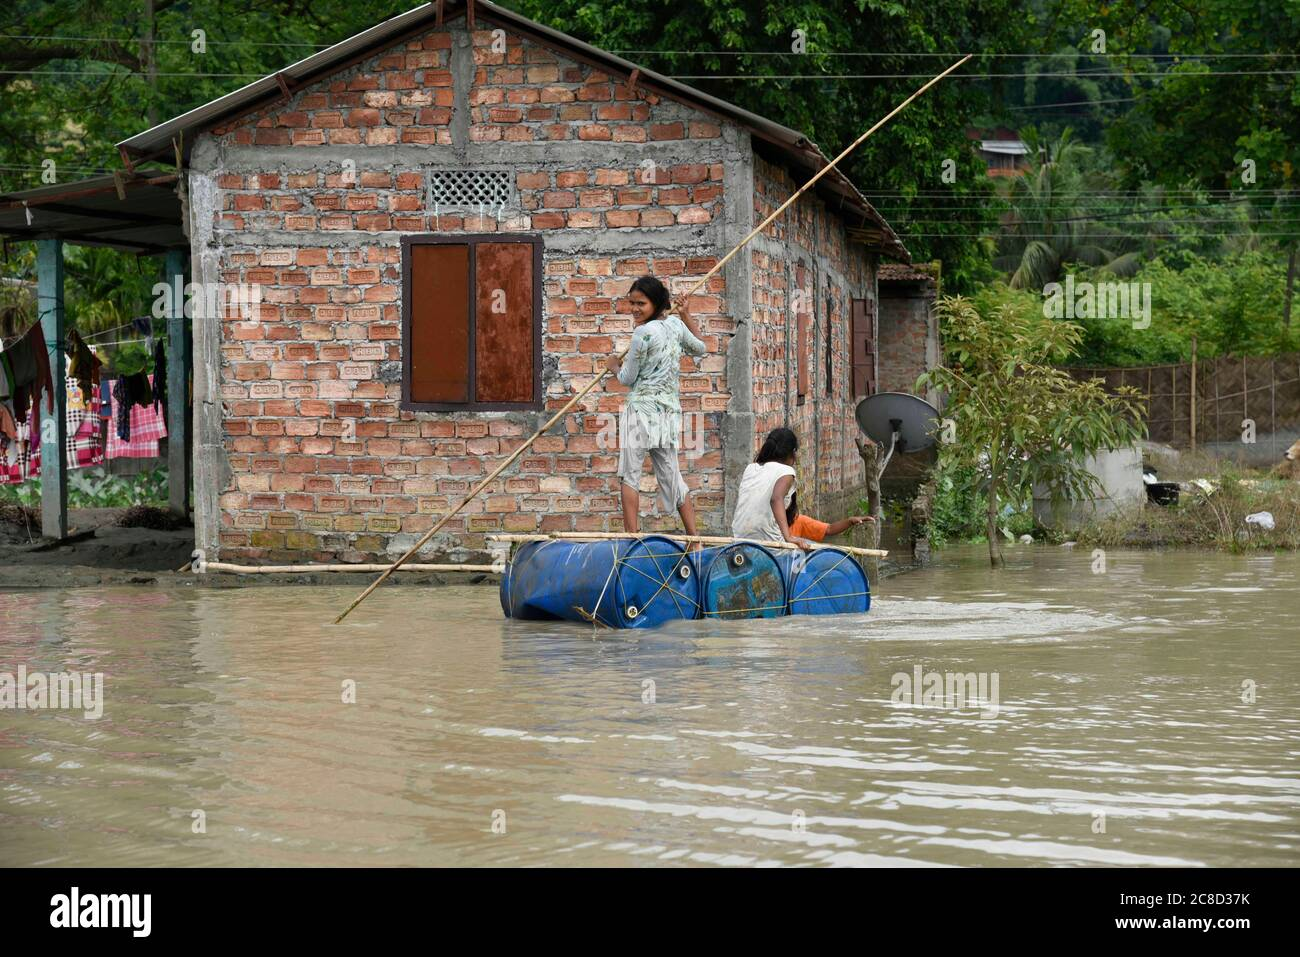 Kamrup, Assam, India. 23rd July, 2020. Girl row a raft in a flood affected village in Kamrup district of Assam. Credit: David Talukdar/ZUMA Wire/Alamy Live News Stock Photo